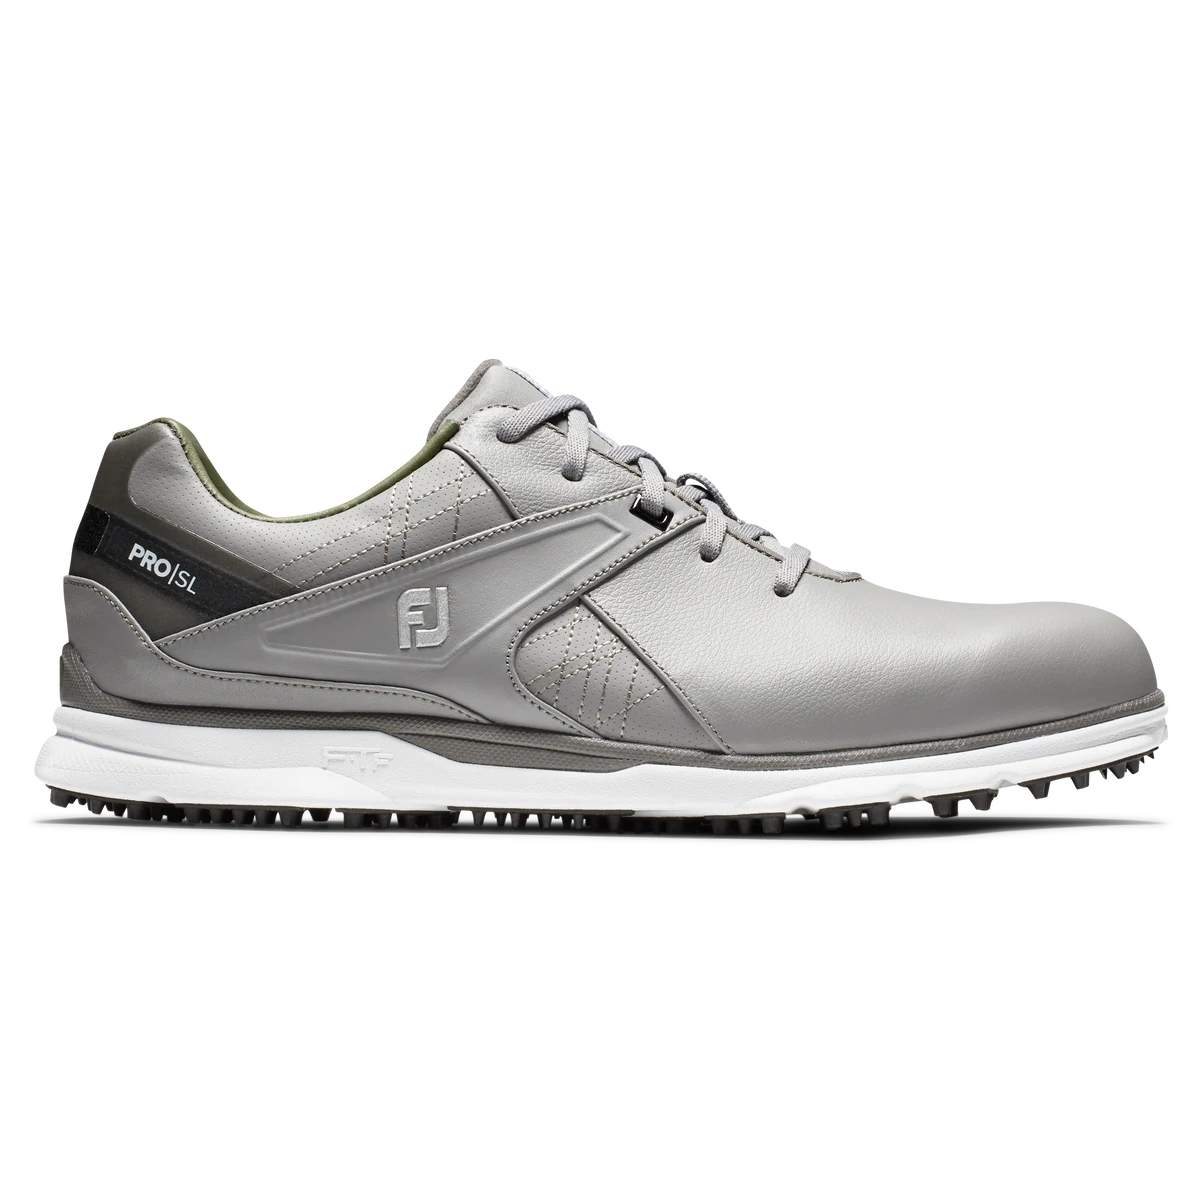 FootJoy Men's Pro|SL Golf Shoe - Grey 53847